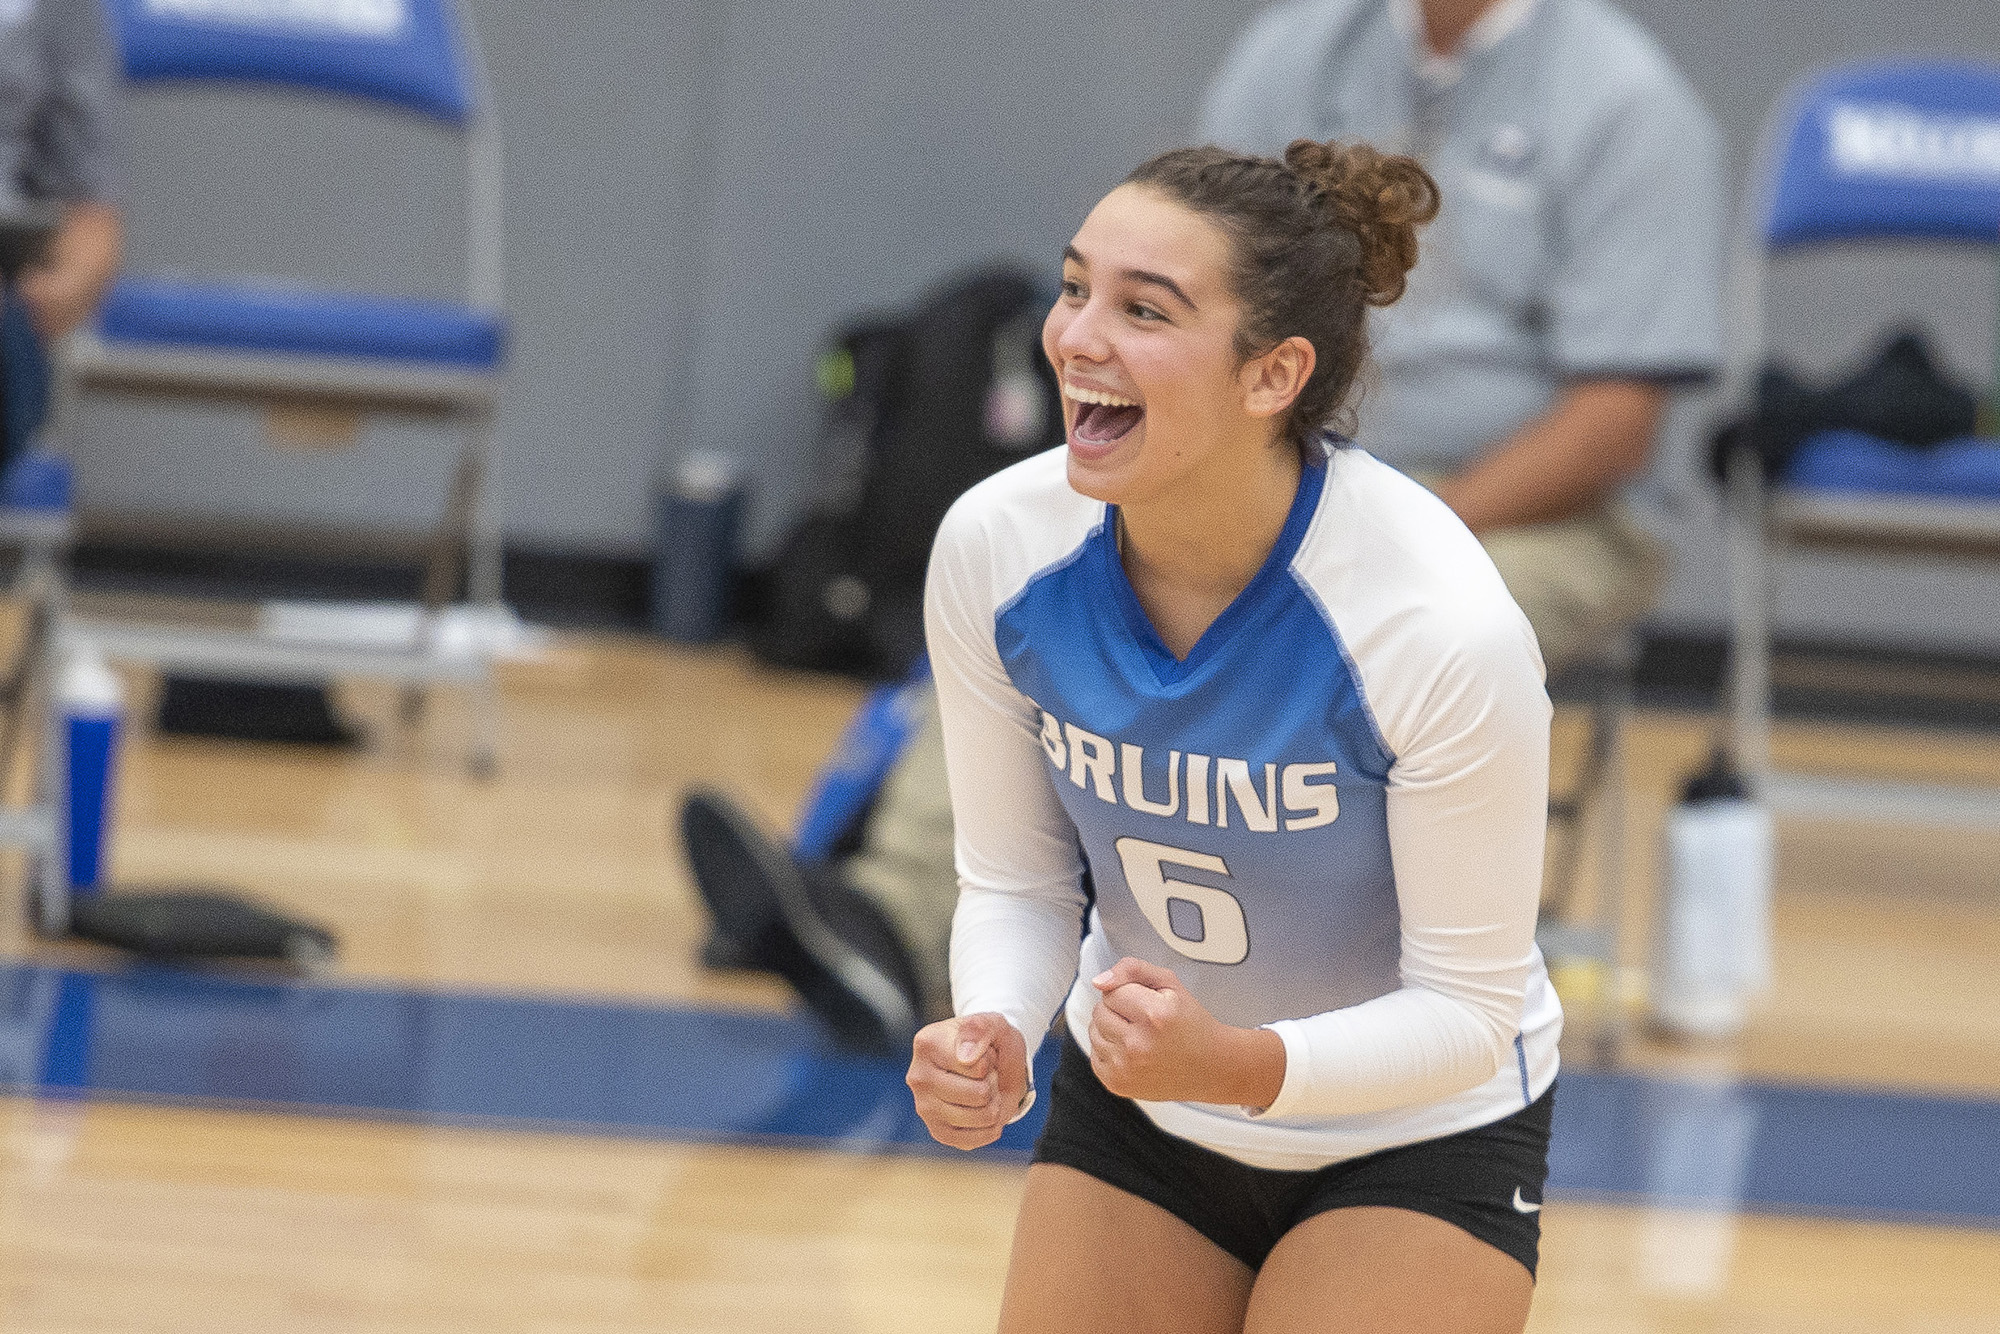 A volleyball player celebrates after scoring a point.